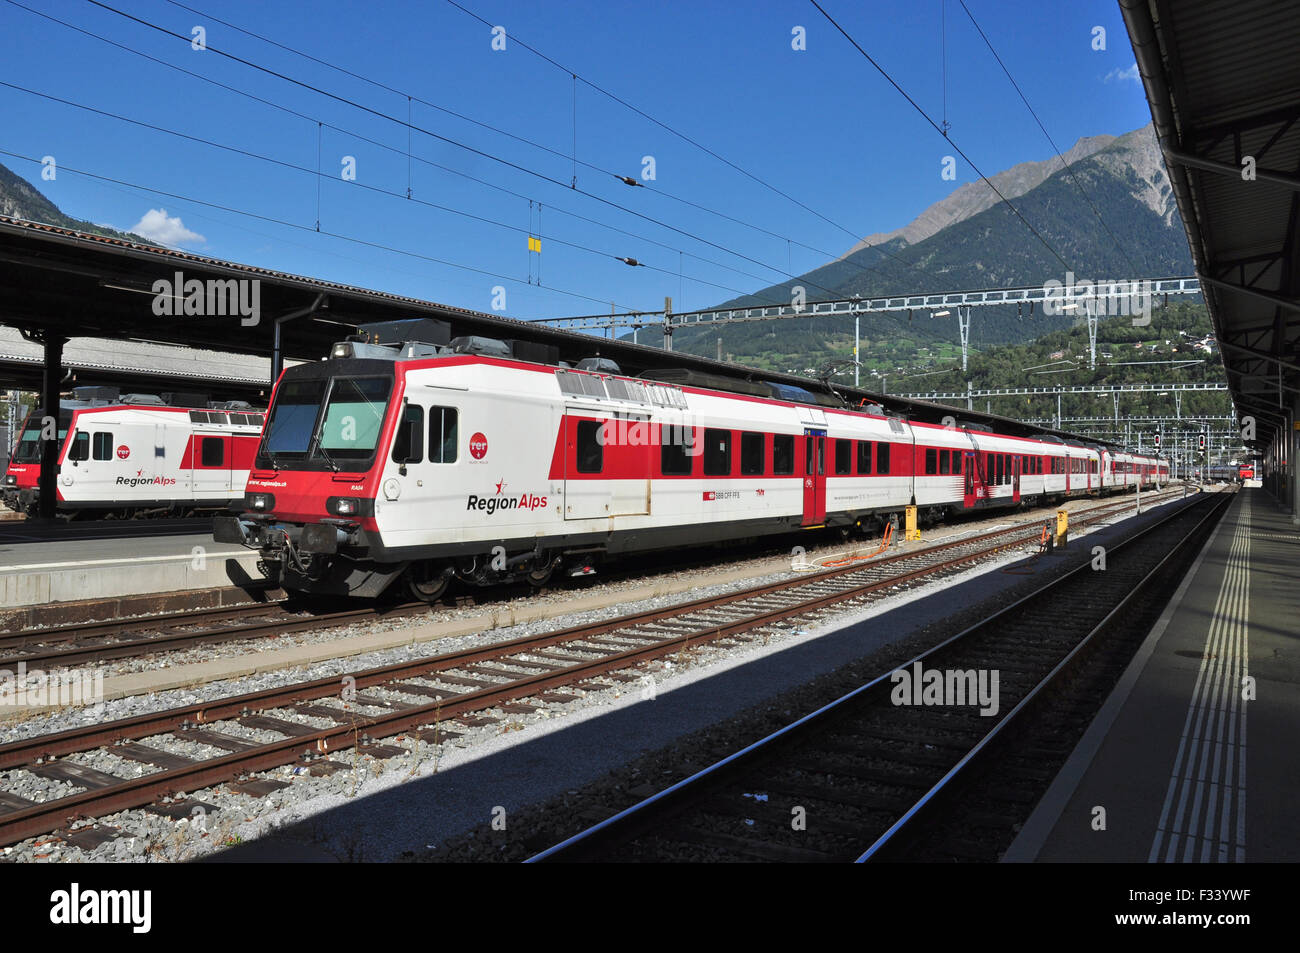 Electric Multiple Unit Passenger Trains at Brig, Valais, Switzerland - Stock Image